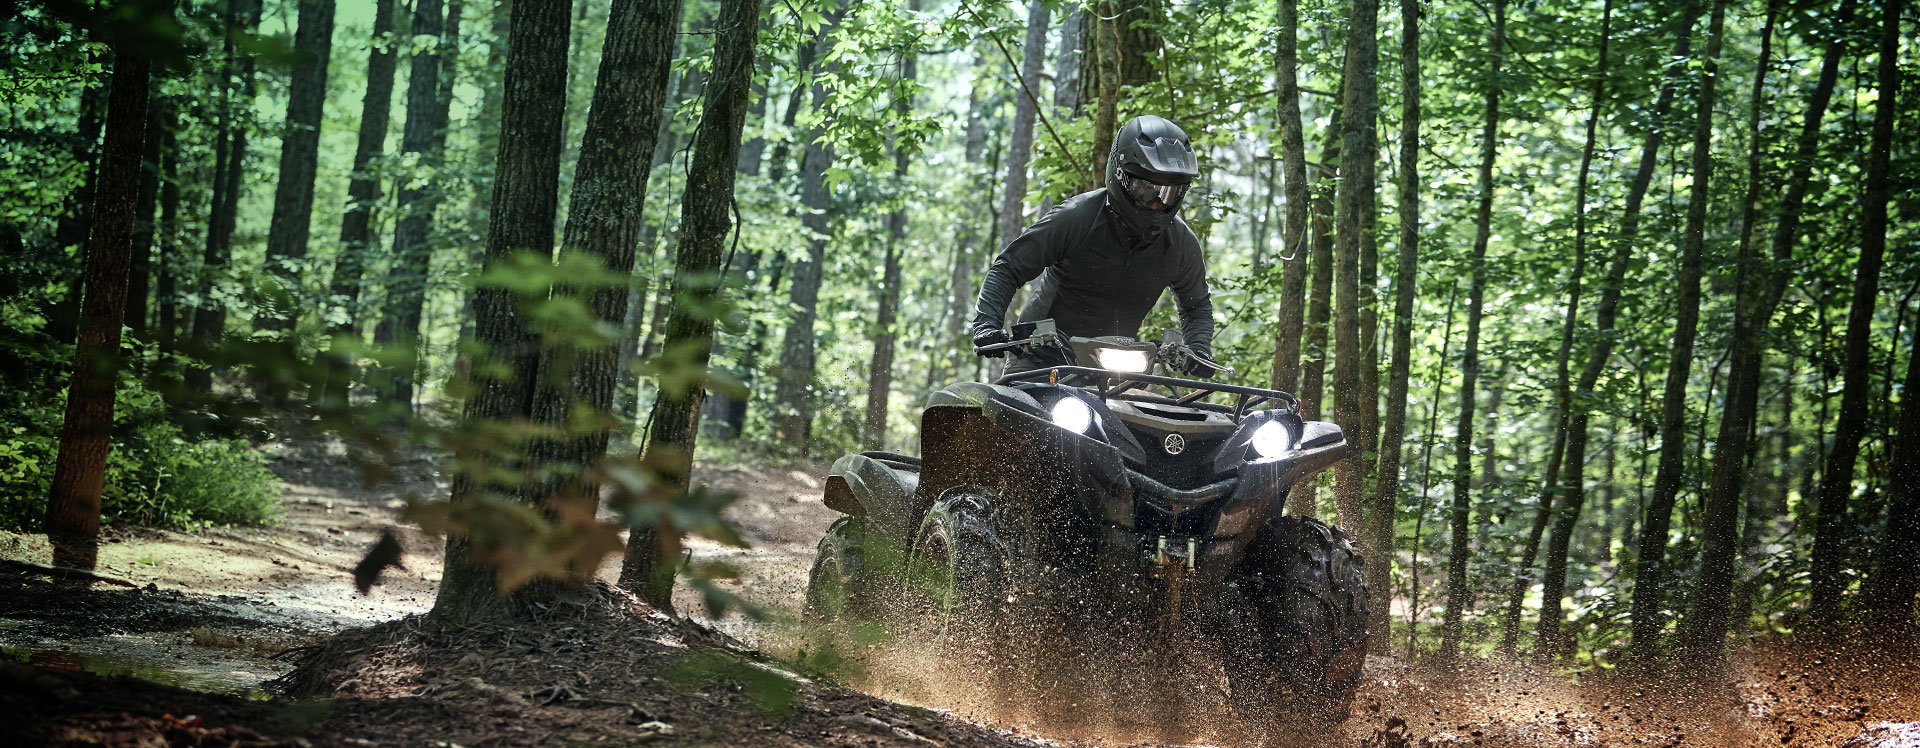 2020 Yamaha Grizzly-Eps-Xt-R